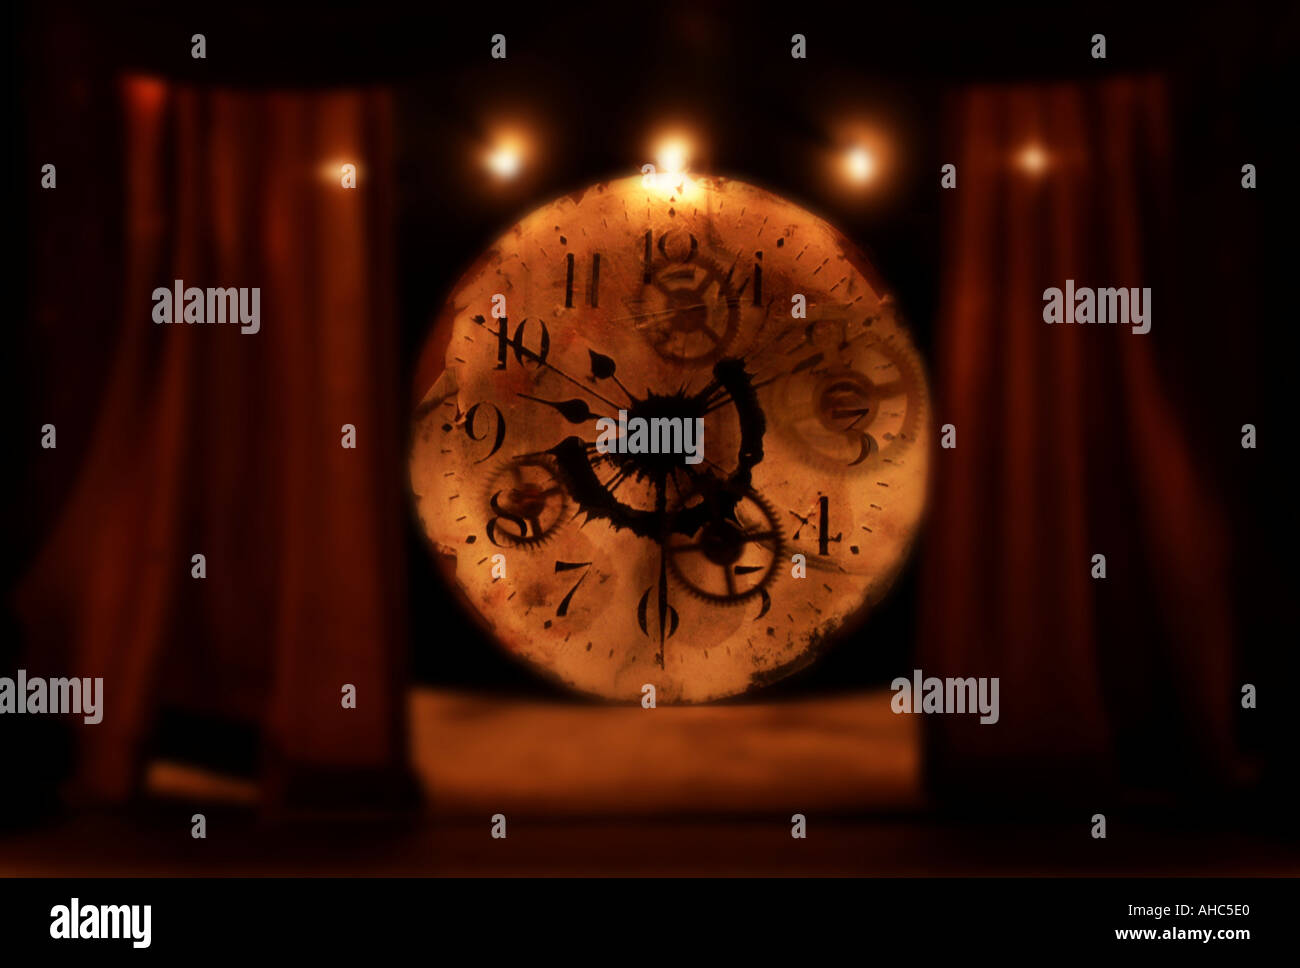 Clock and stage curtains - Stock Image